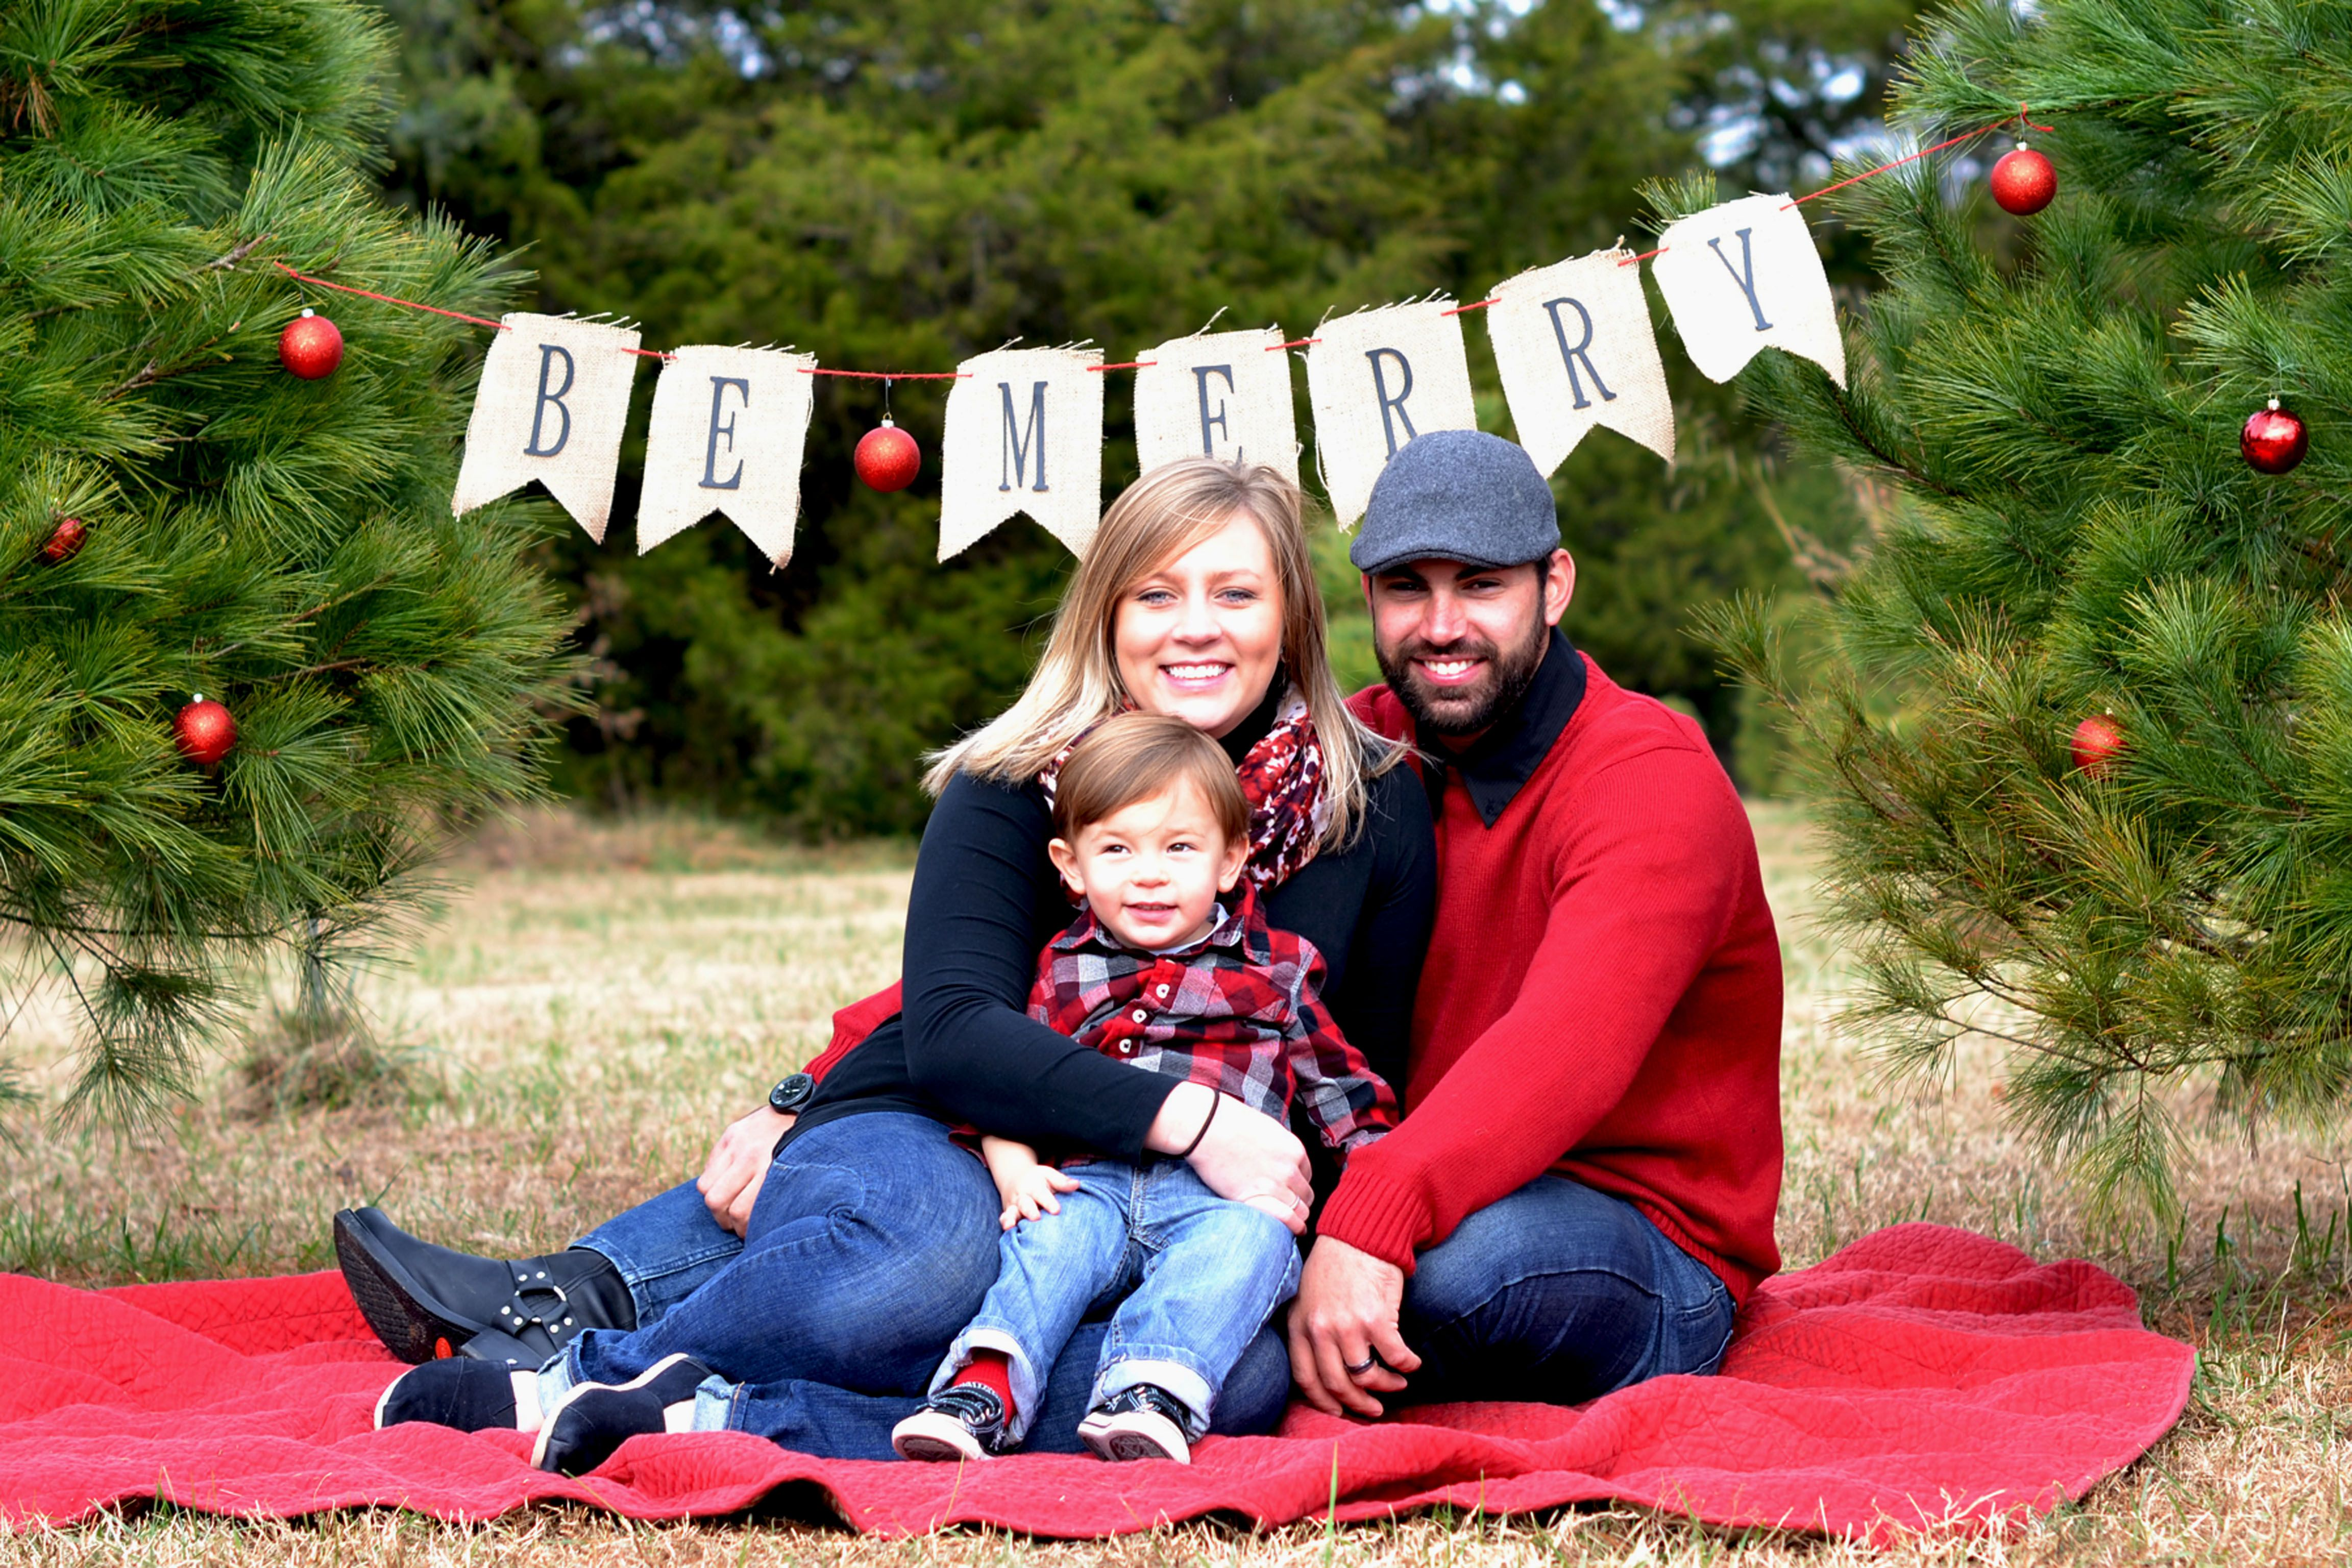 Love The Simplicity Of The Background Decorations Family Christmas Pictures Christmas Tree Farm Photos Family Christmas Pictures Christmas Tree Farm Pictures